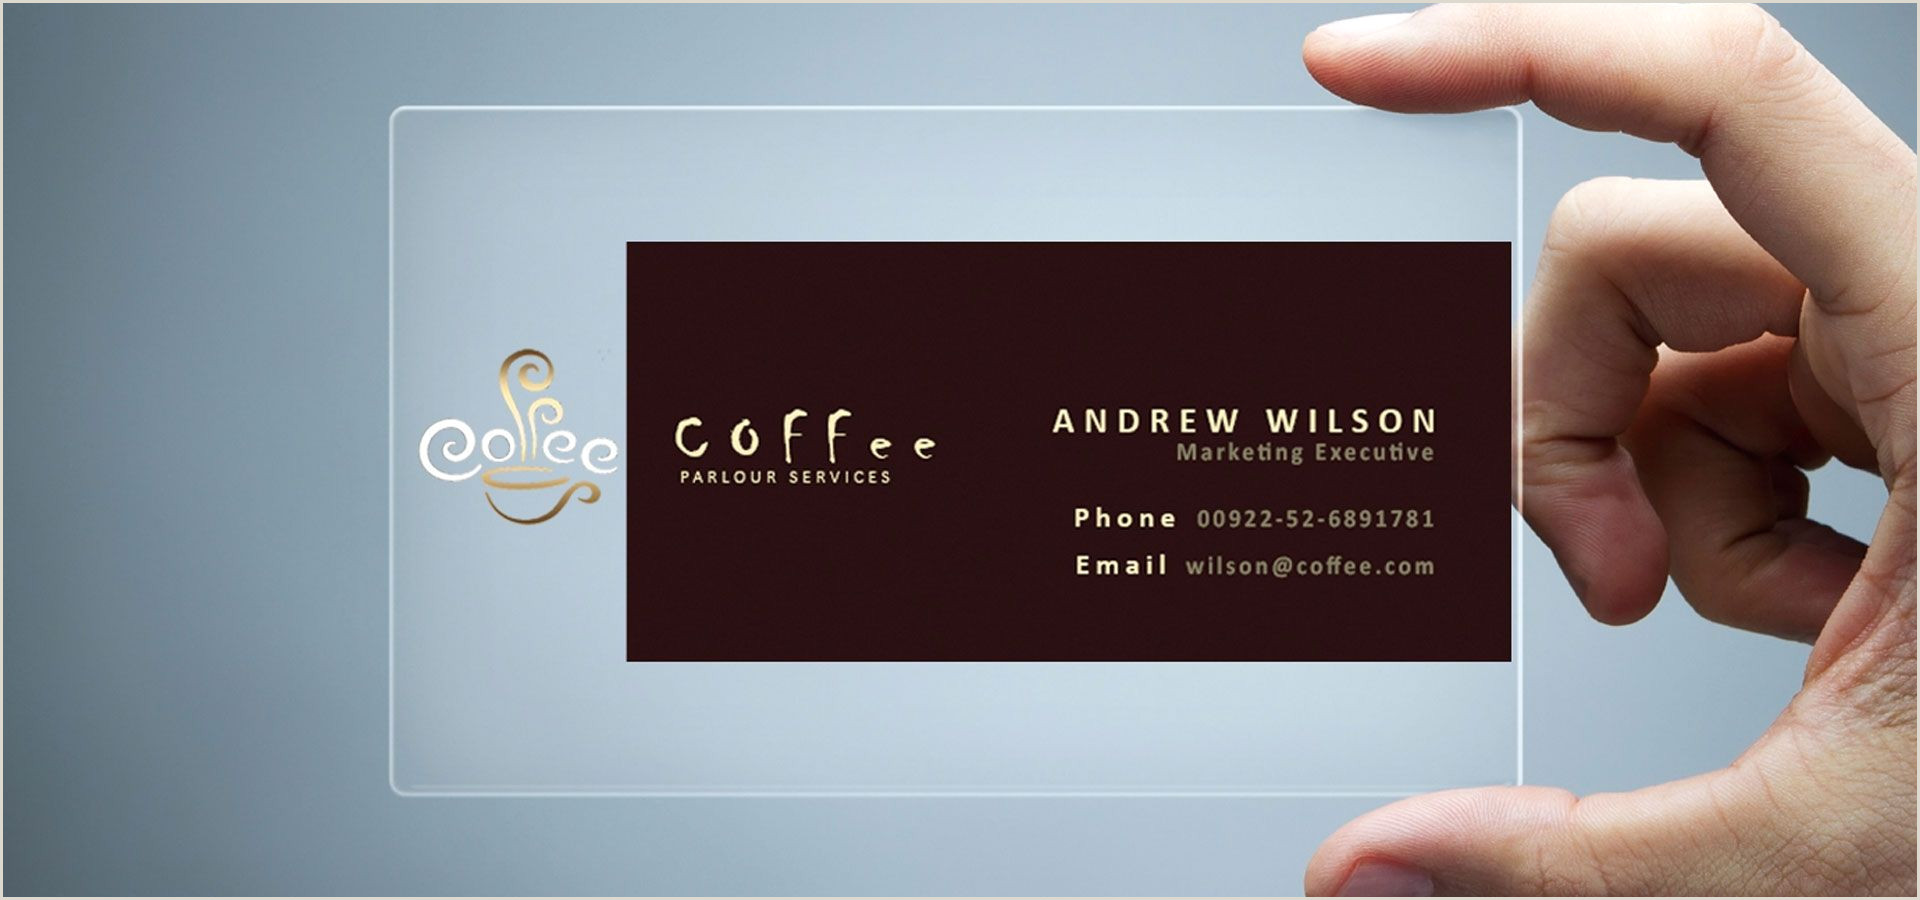 Unique Opaque Business Cards The Breathtaking 023 Template Ideas Business Card